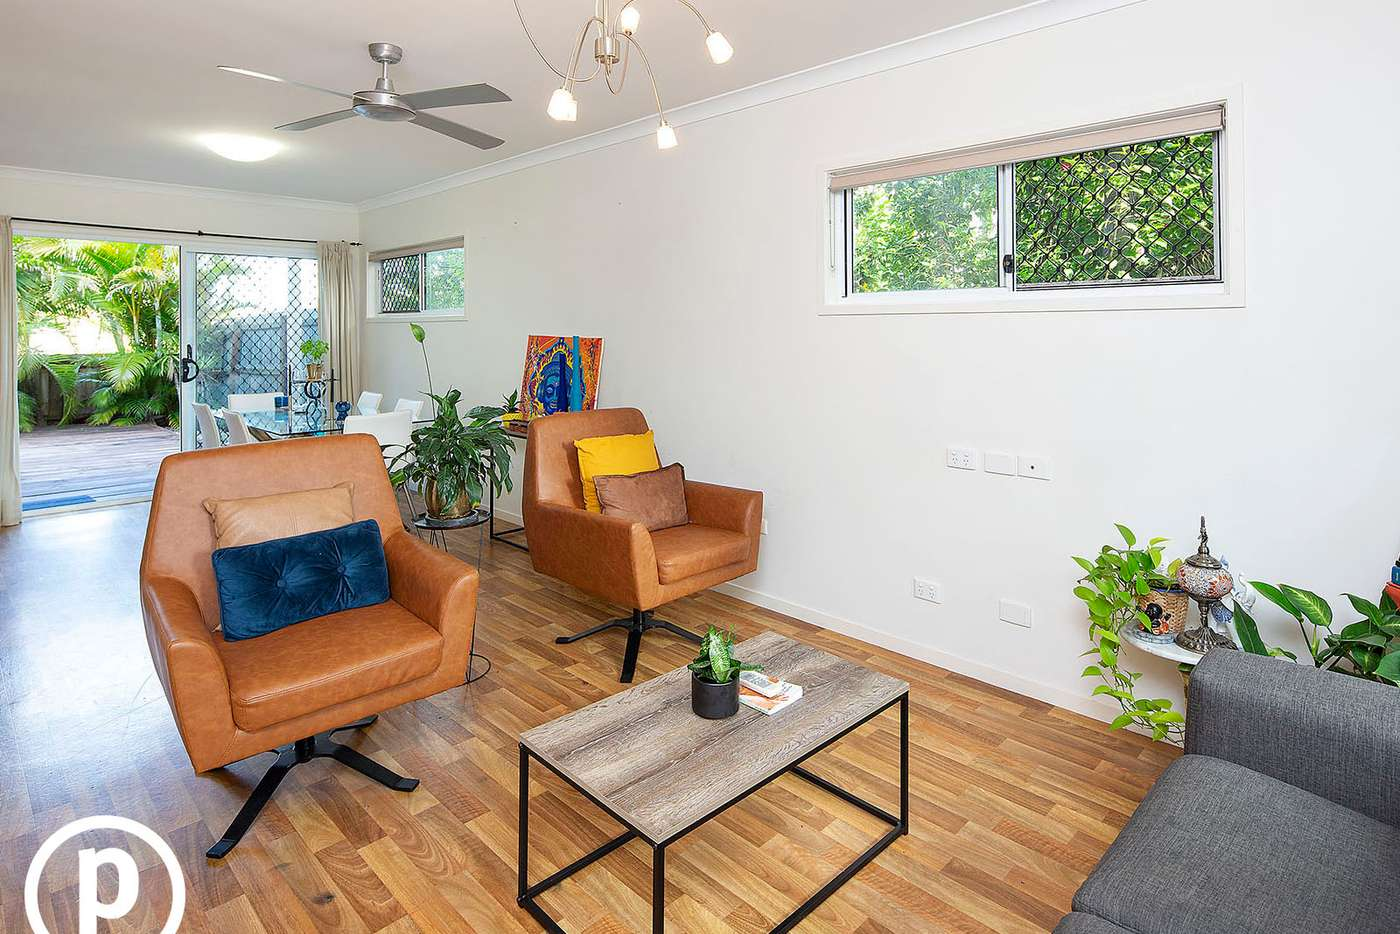 Fifth view of Homely townhouse listing, 6/26 Joyce Street, Burpengary QLD 4505